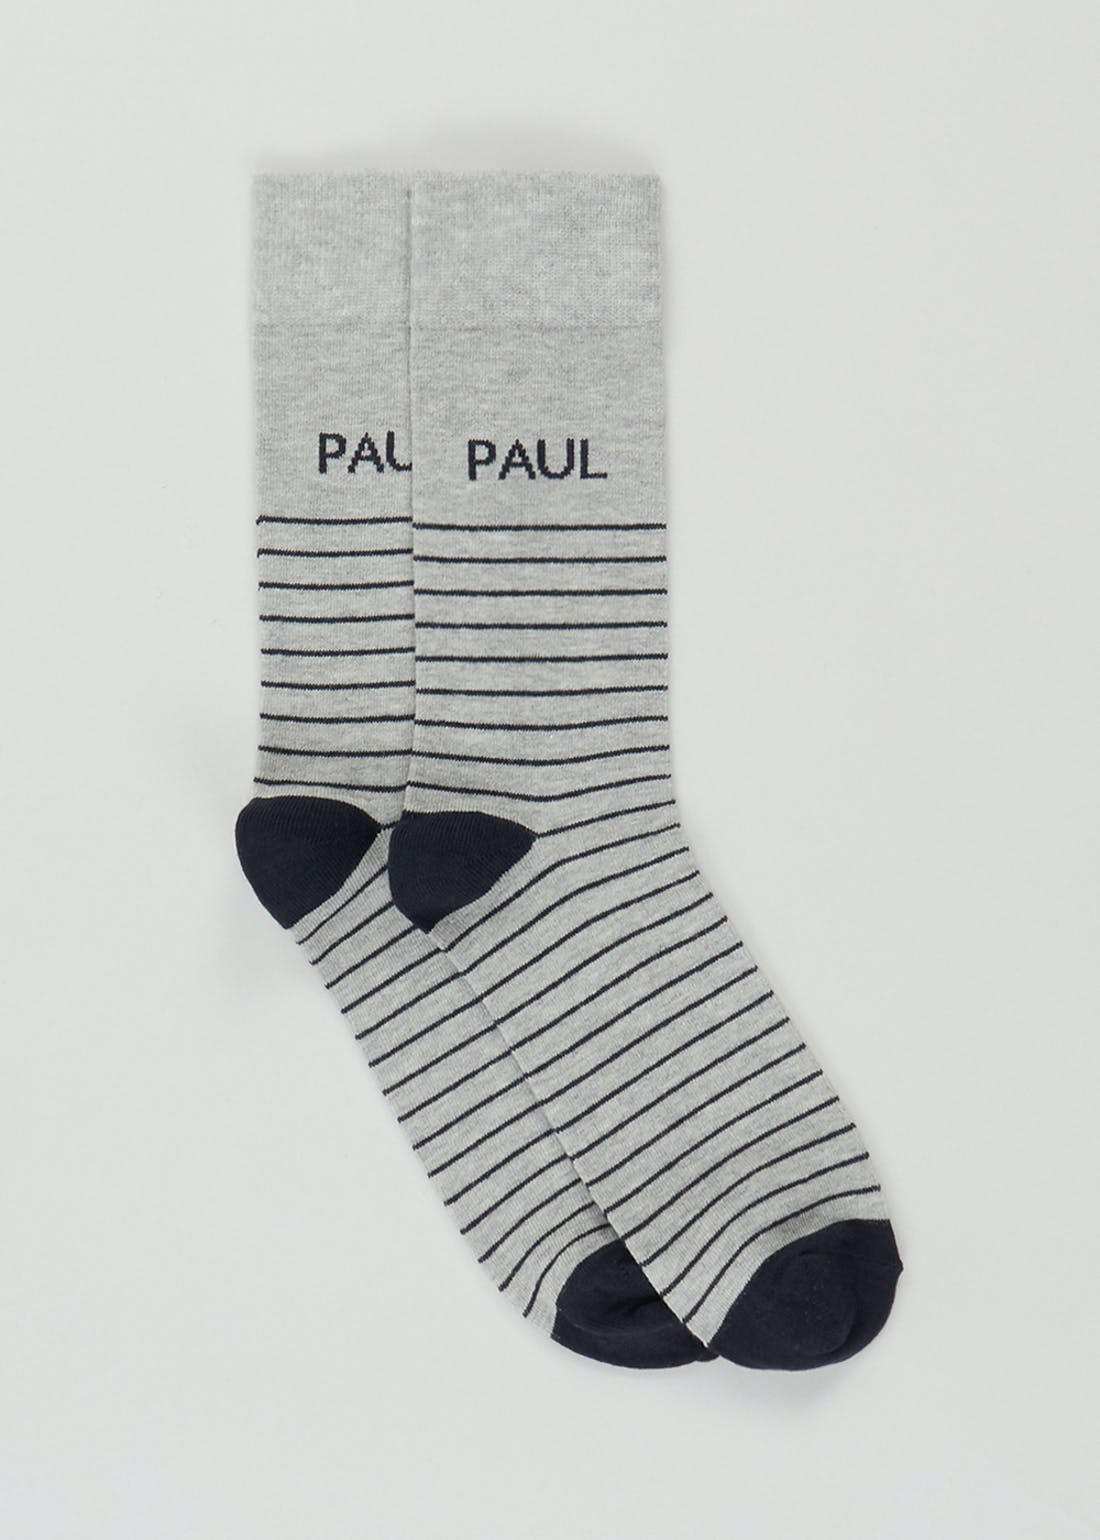 Paul Name Socks